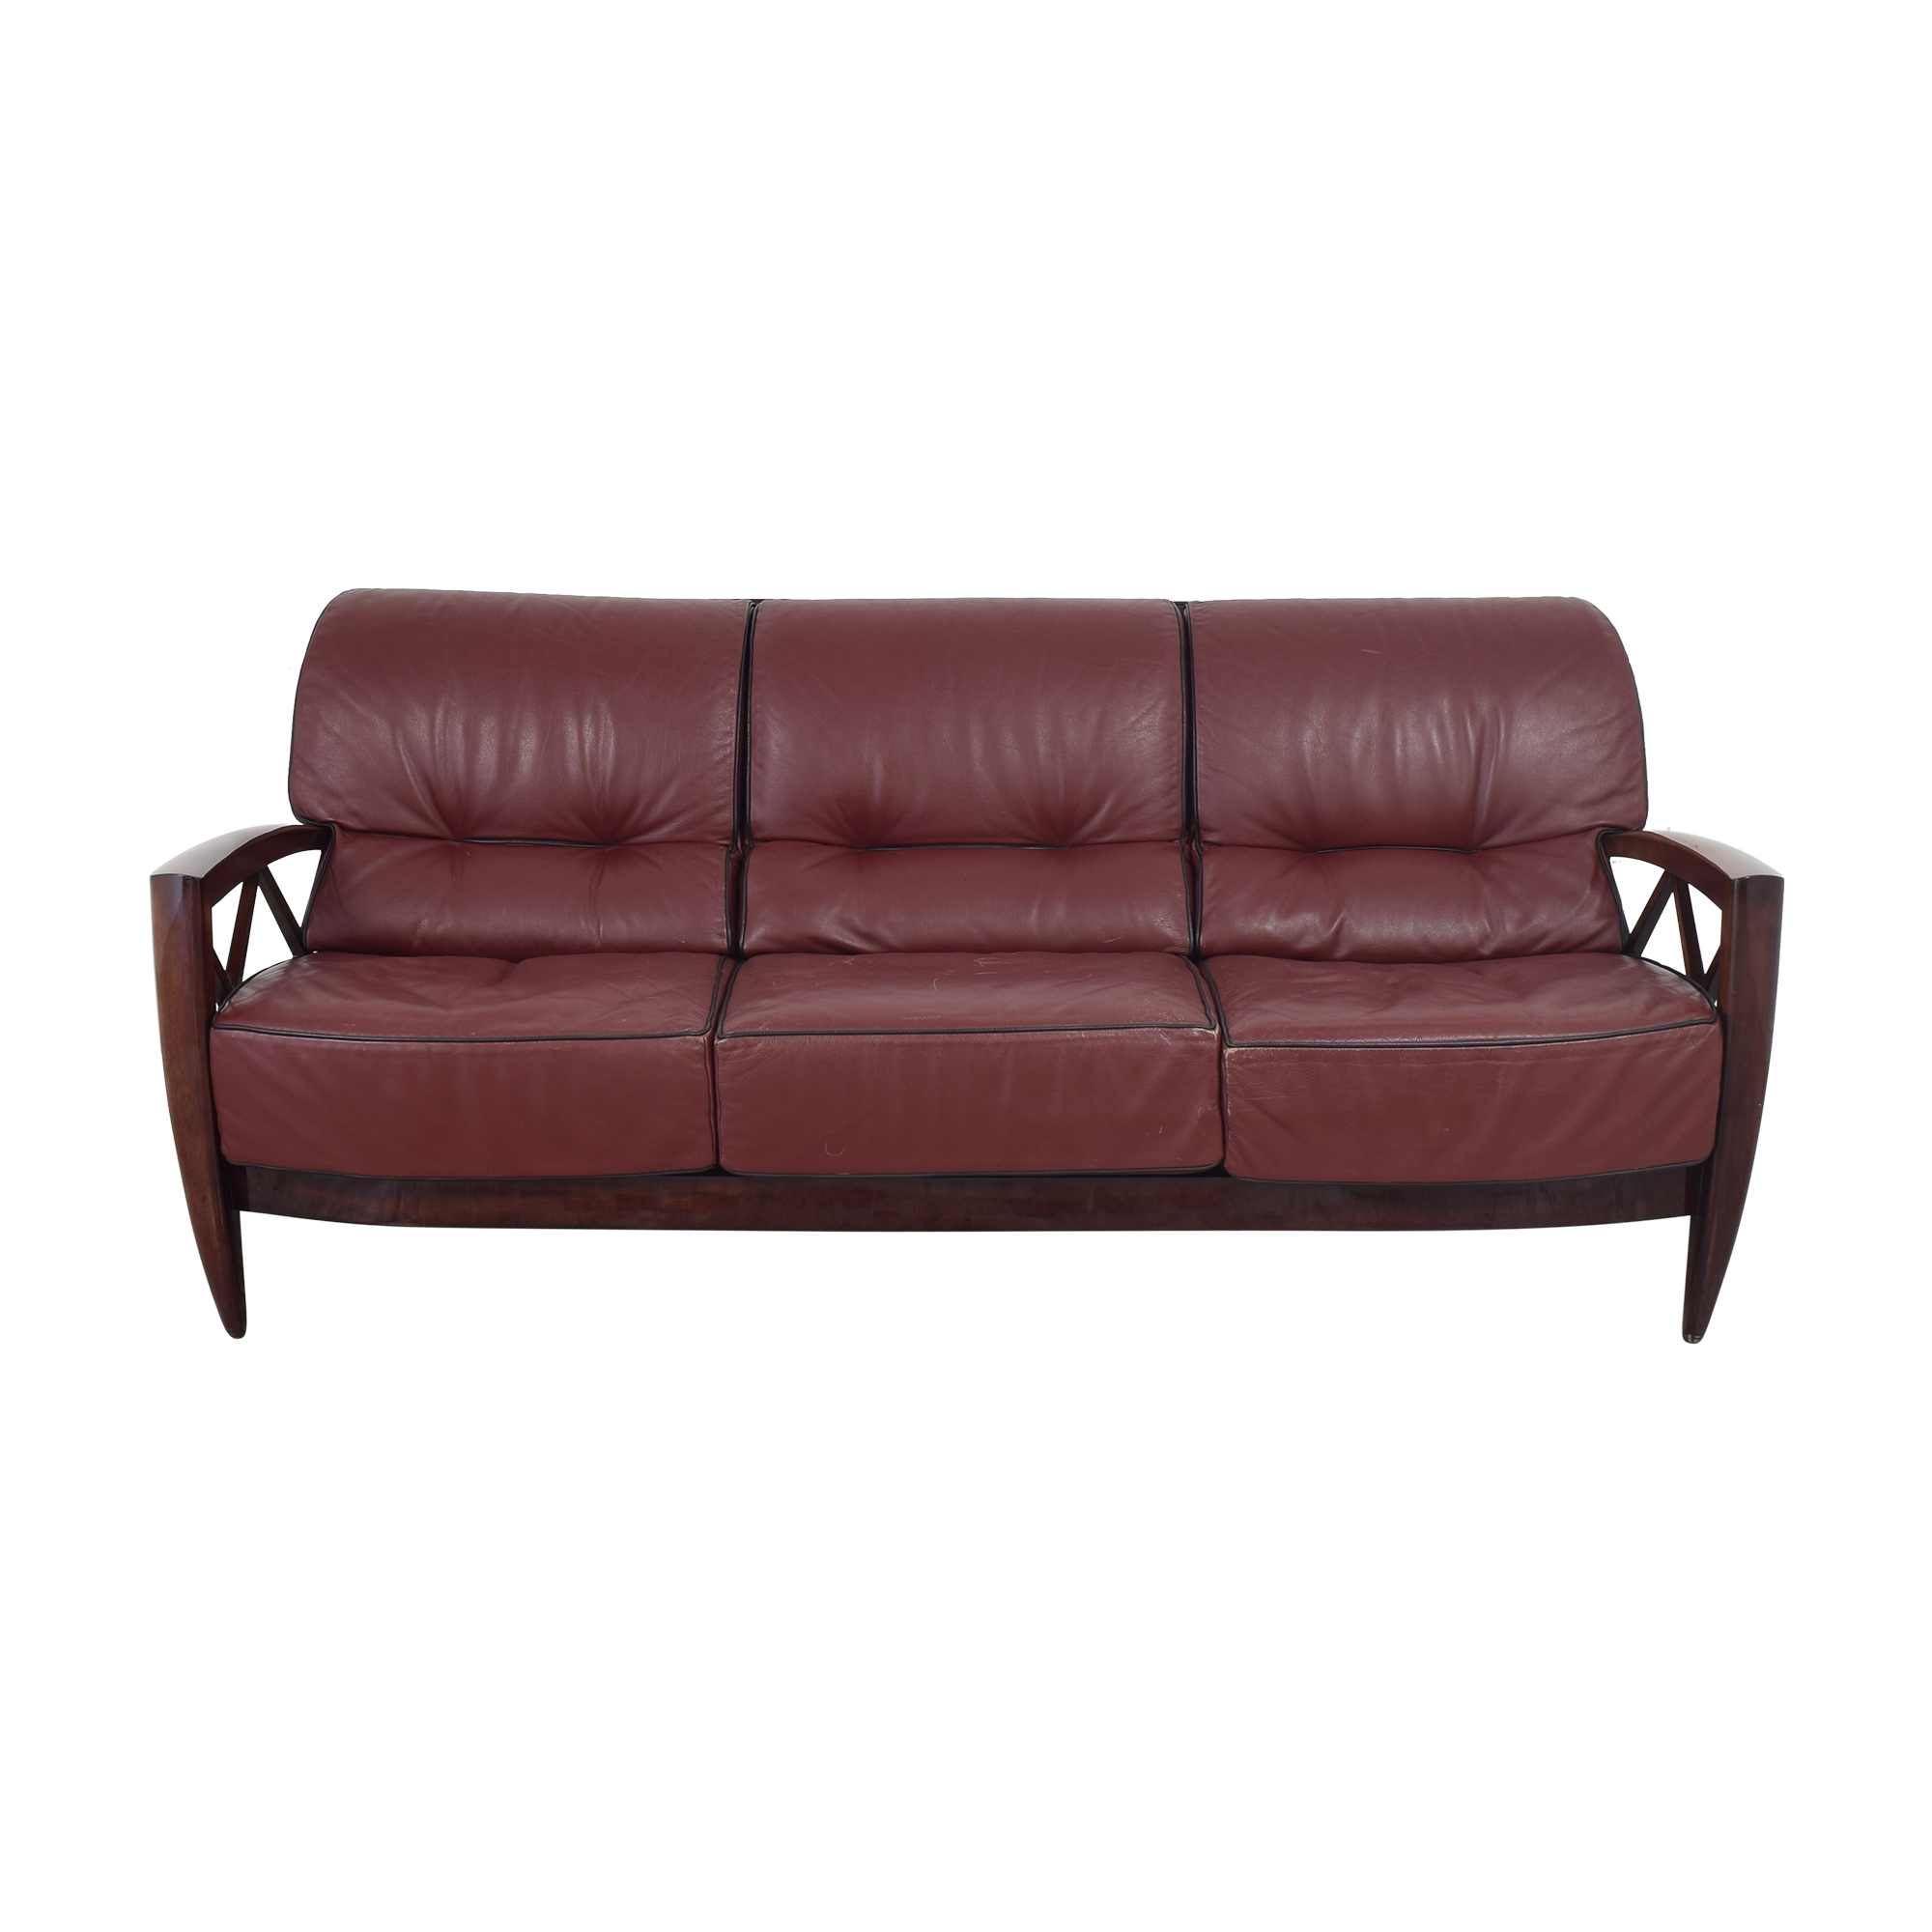 Pace Collection i4Mariani for Pace Collection Three Seat Sofa second hand